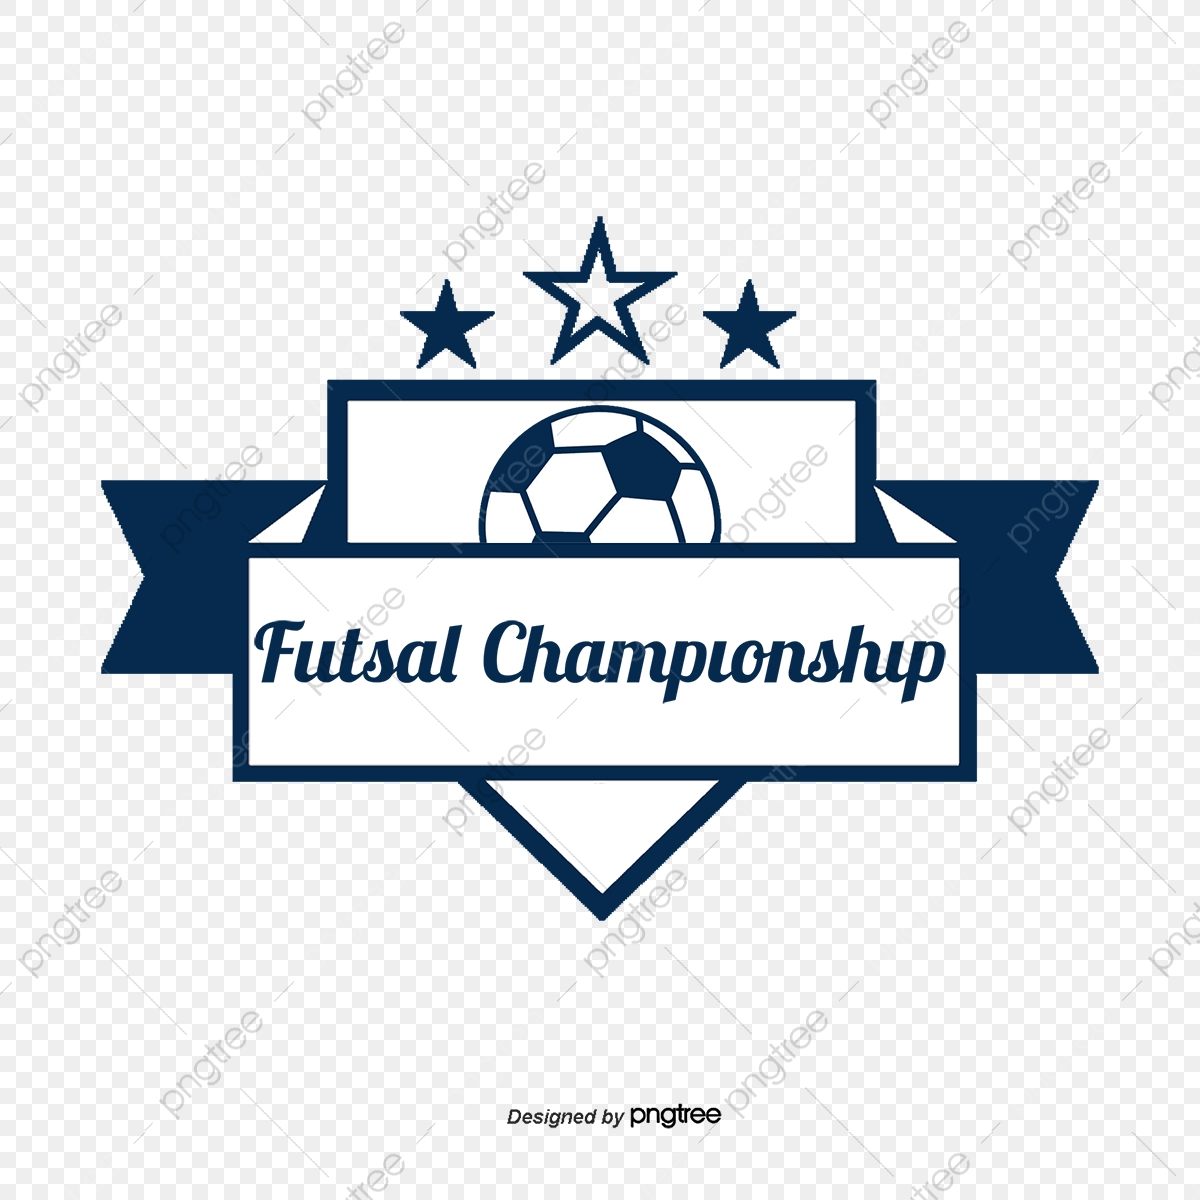 vector futsal icon icon vector futsal football png transparent clipart image and psd file for free download https pngtree com freepng vector futsal icon 2468159 html